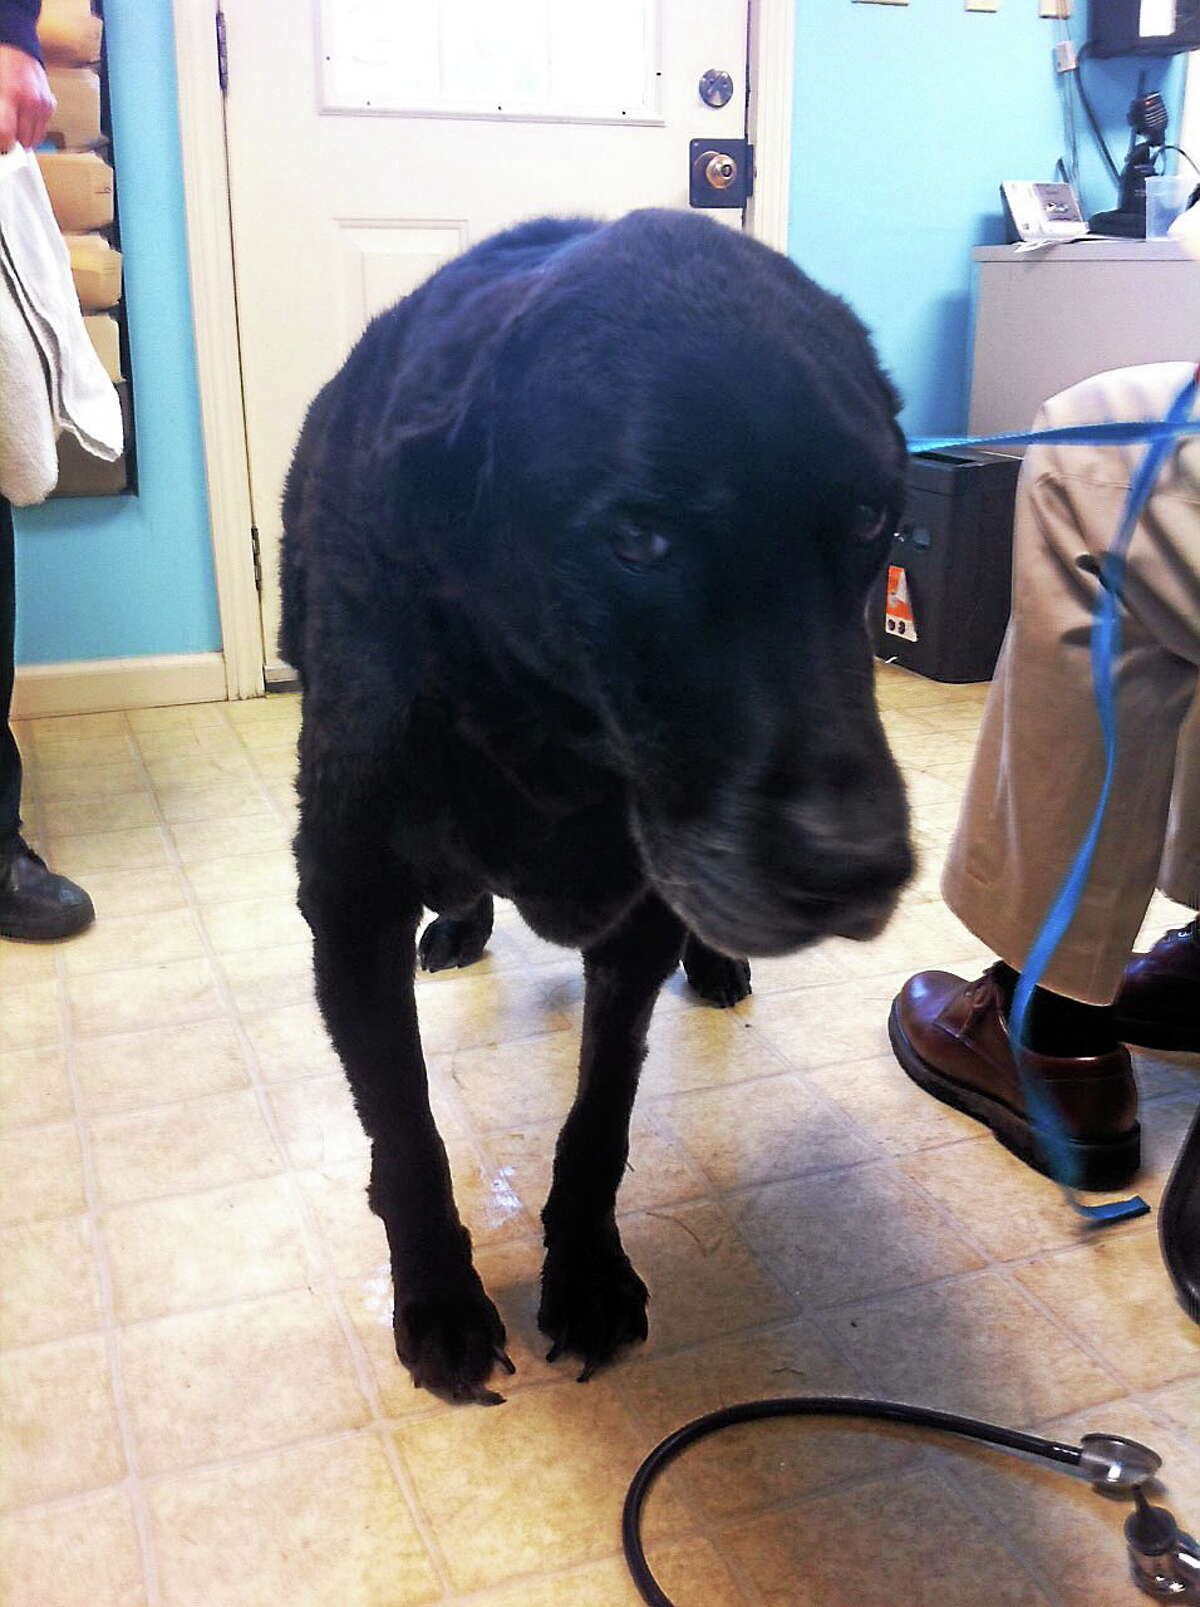 """A dog seized from a Torrington house where 26 animals were found in """"deplorable conditions,"""" according to police."""